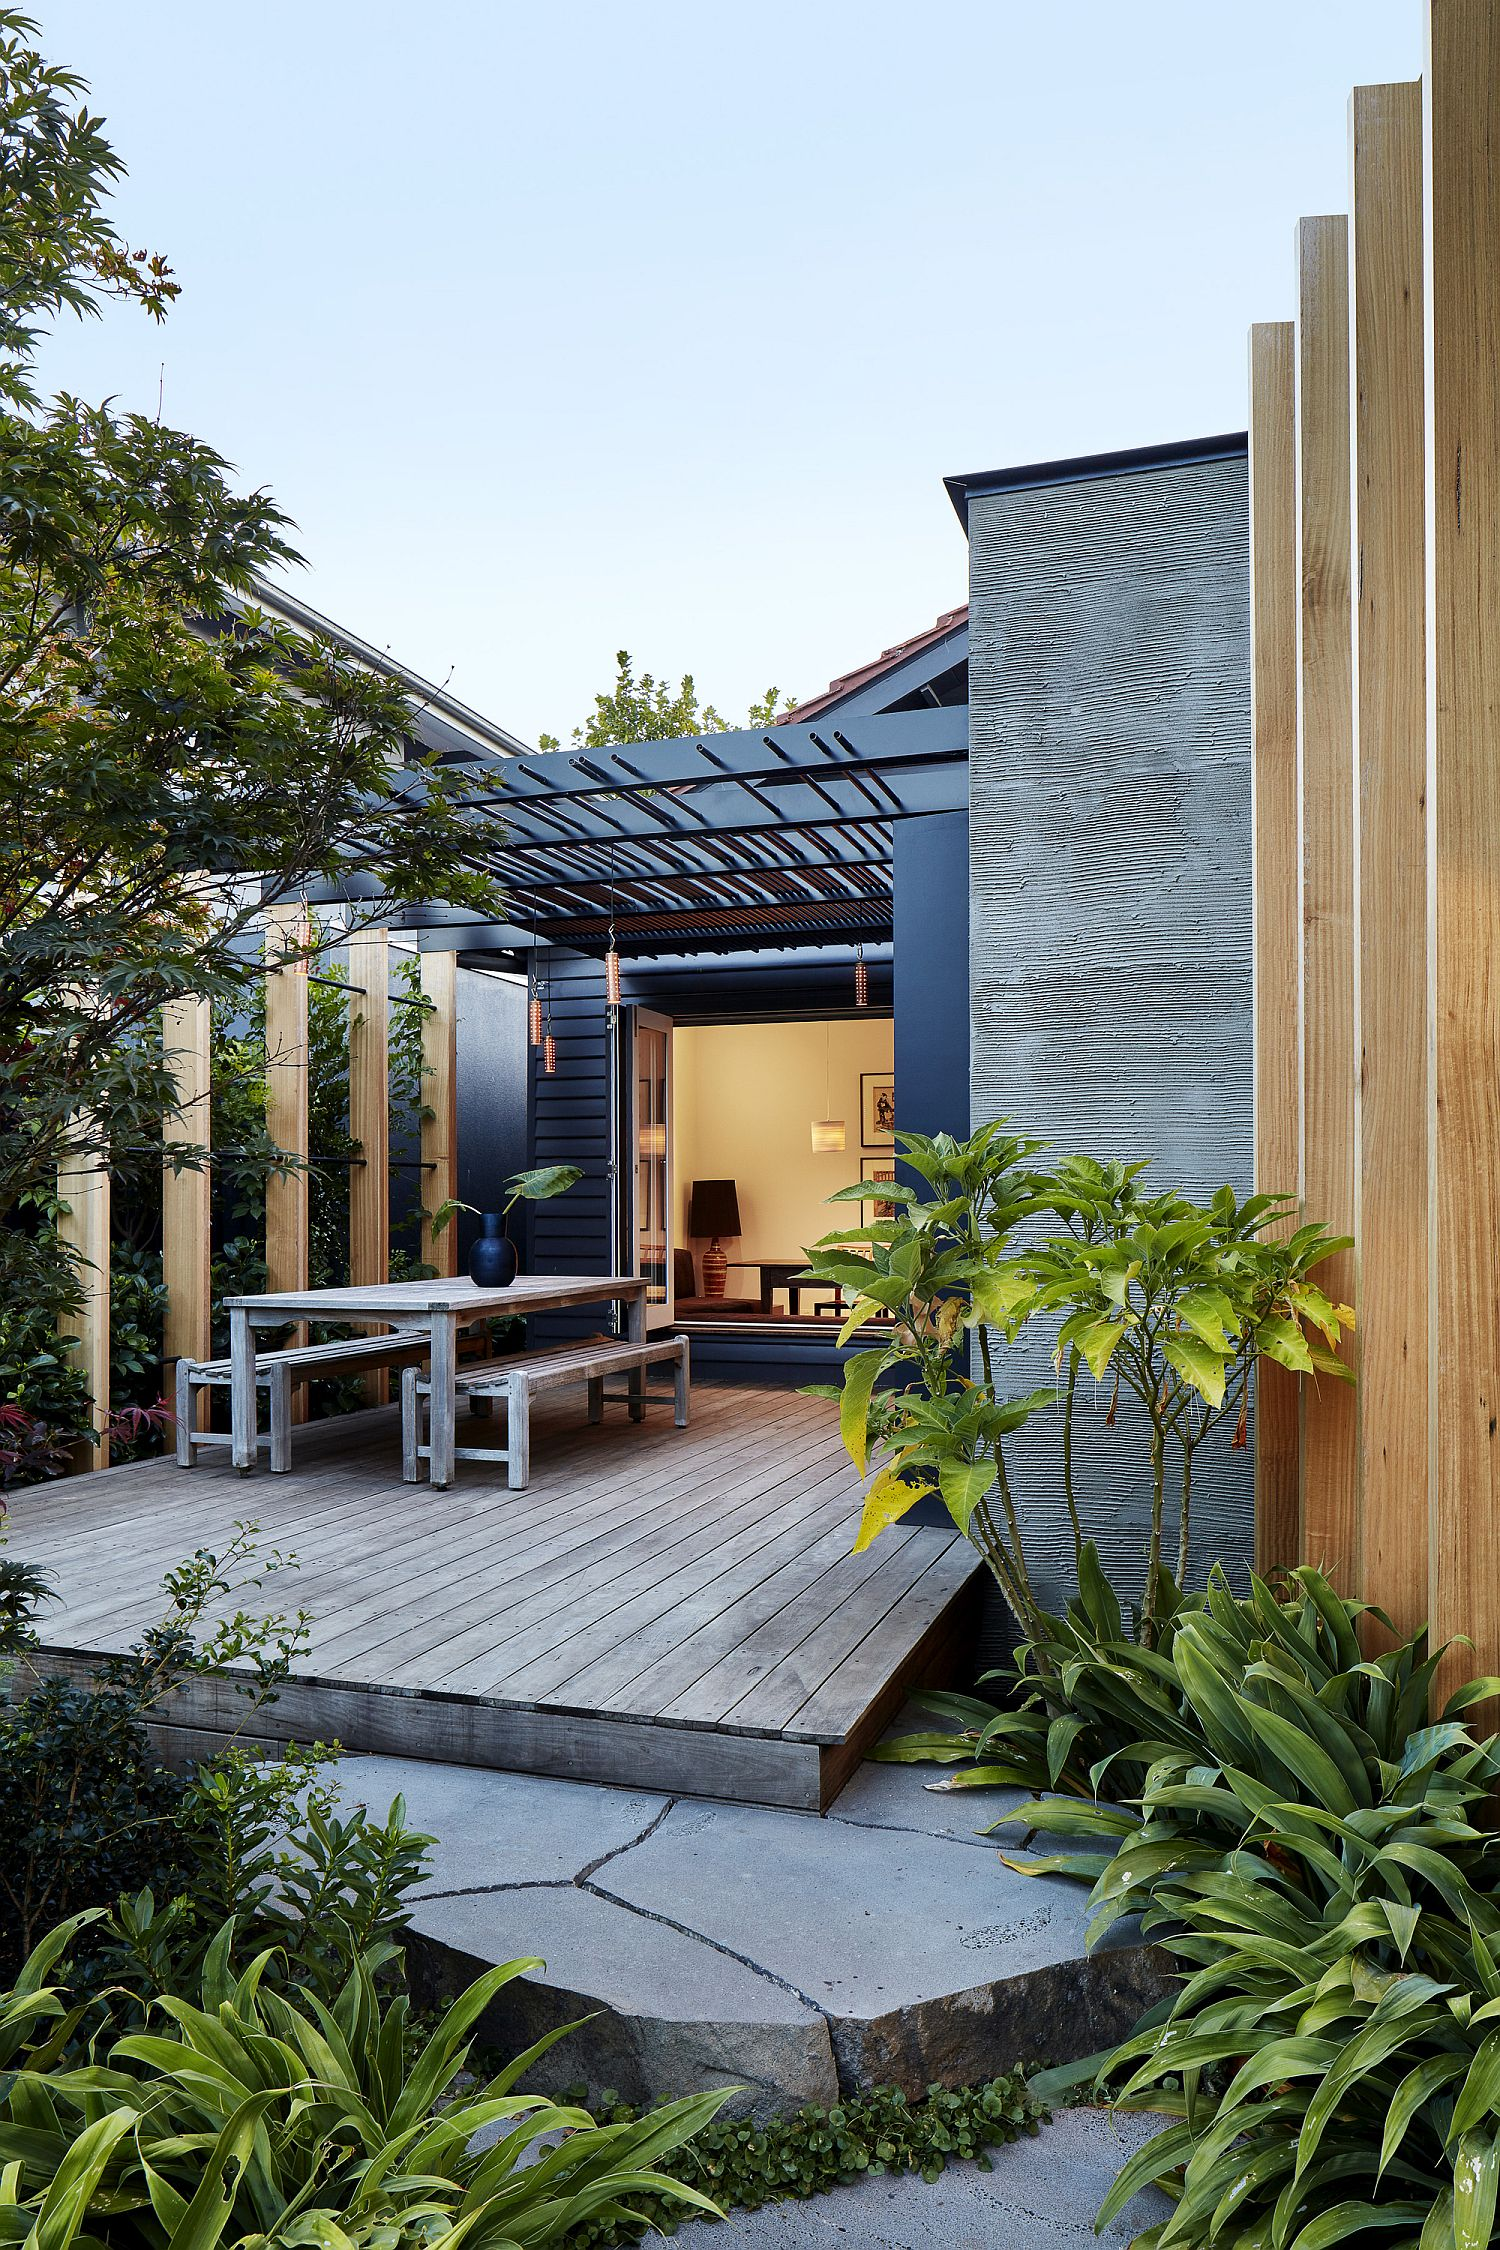 Deck-with-shade-extends-the-living-area-outside